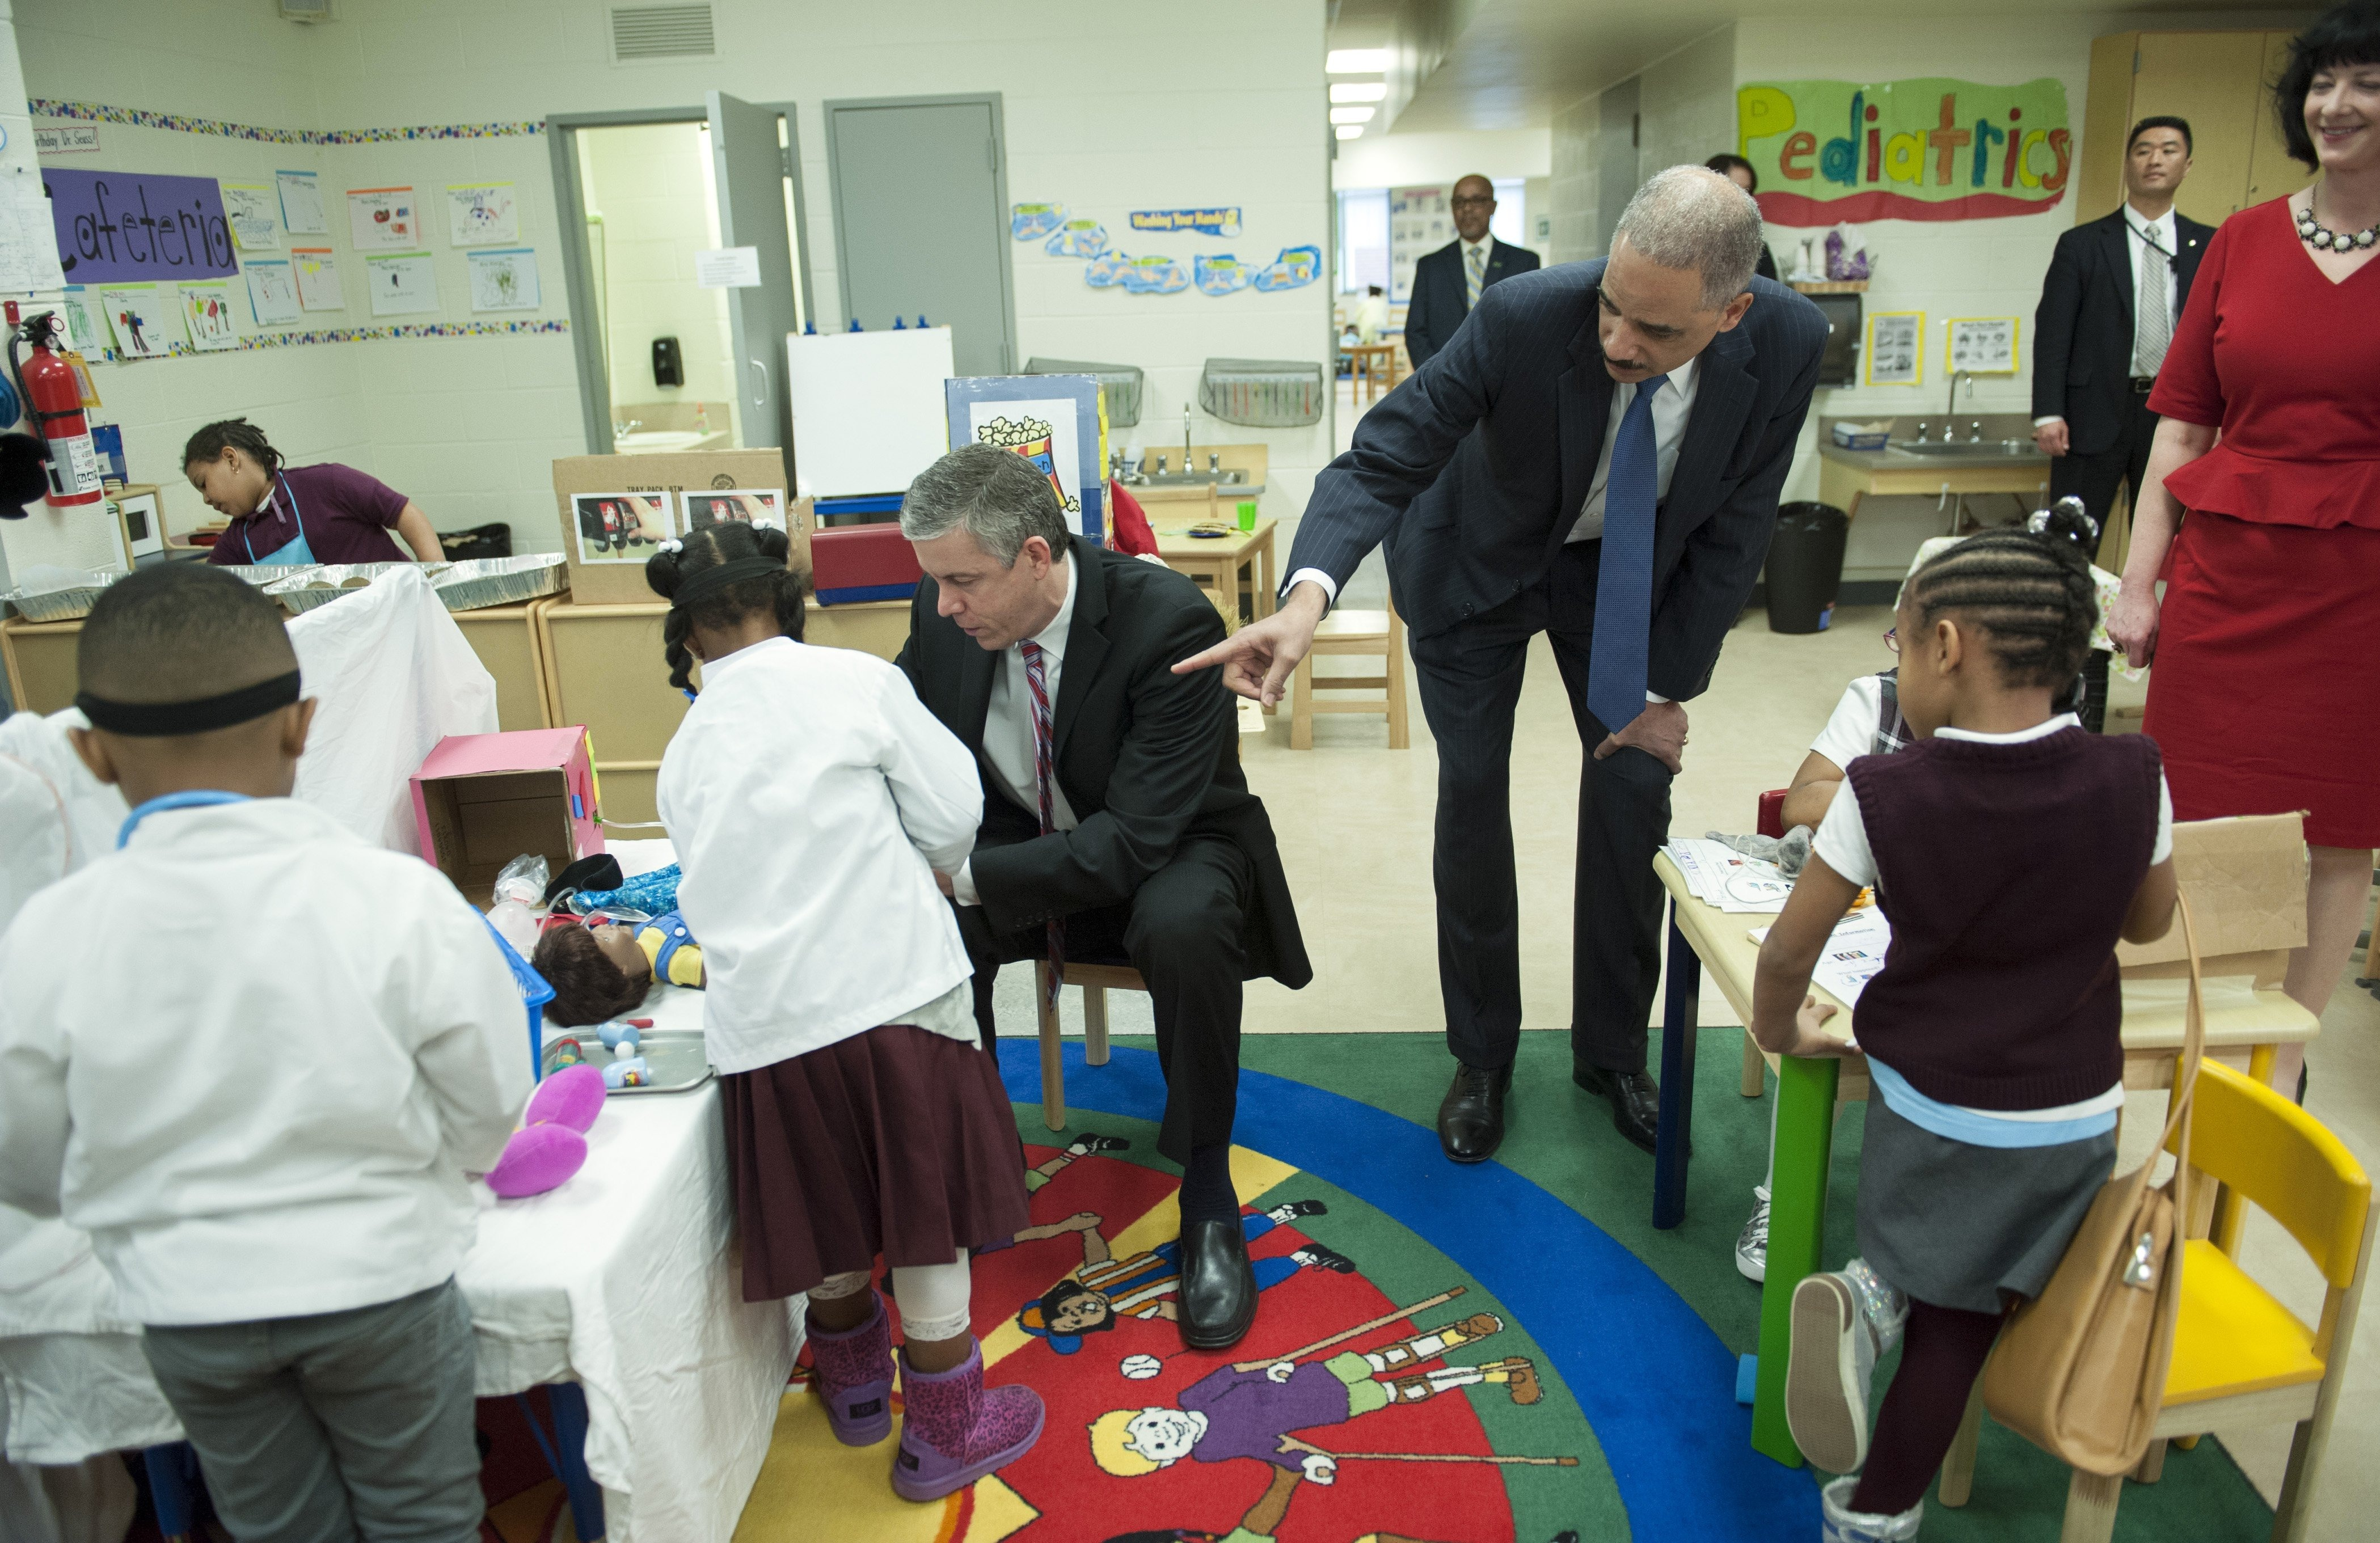 Education Secretary Arne Duncan and Attorney General Eric Holder meet with a preschool class prior to participating in a discussion on the importance of universal access to preschool at J. Ormond Wilson Elementary School in Washington, March 21, 2014.